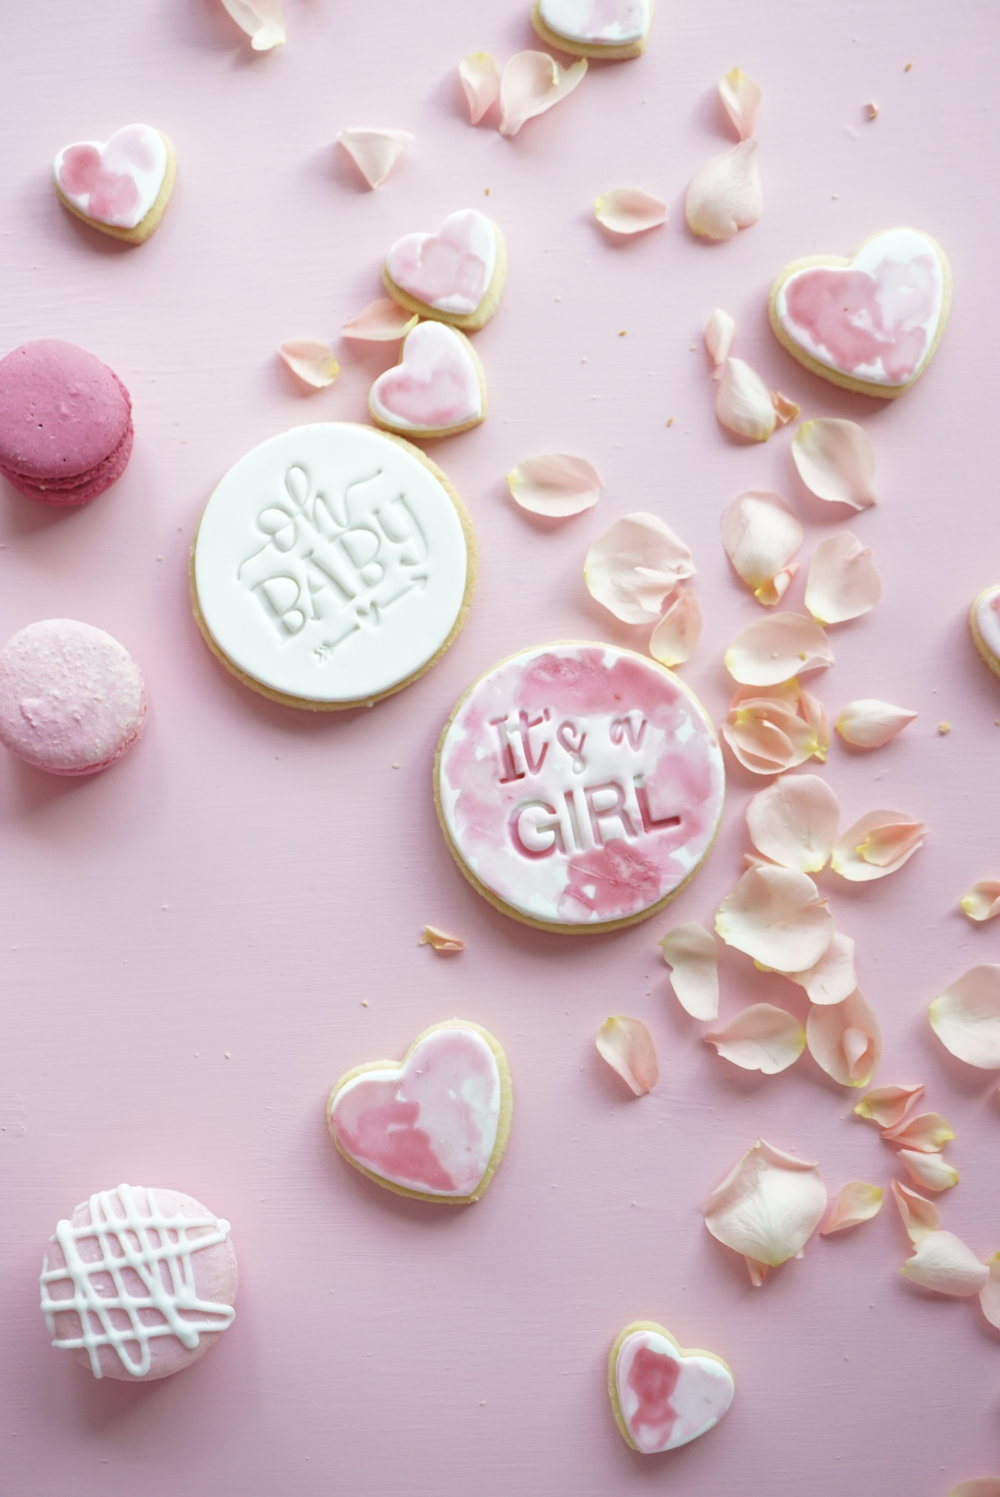 Cakes_By_Aranee_Perth_Drip_Cakes_Custom_Cakes_Wedding_Cakes_Macarons_Cupcakes_Personalised_Cookies_OTHER_DESSERTS_Gallery6.JPG